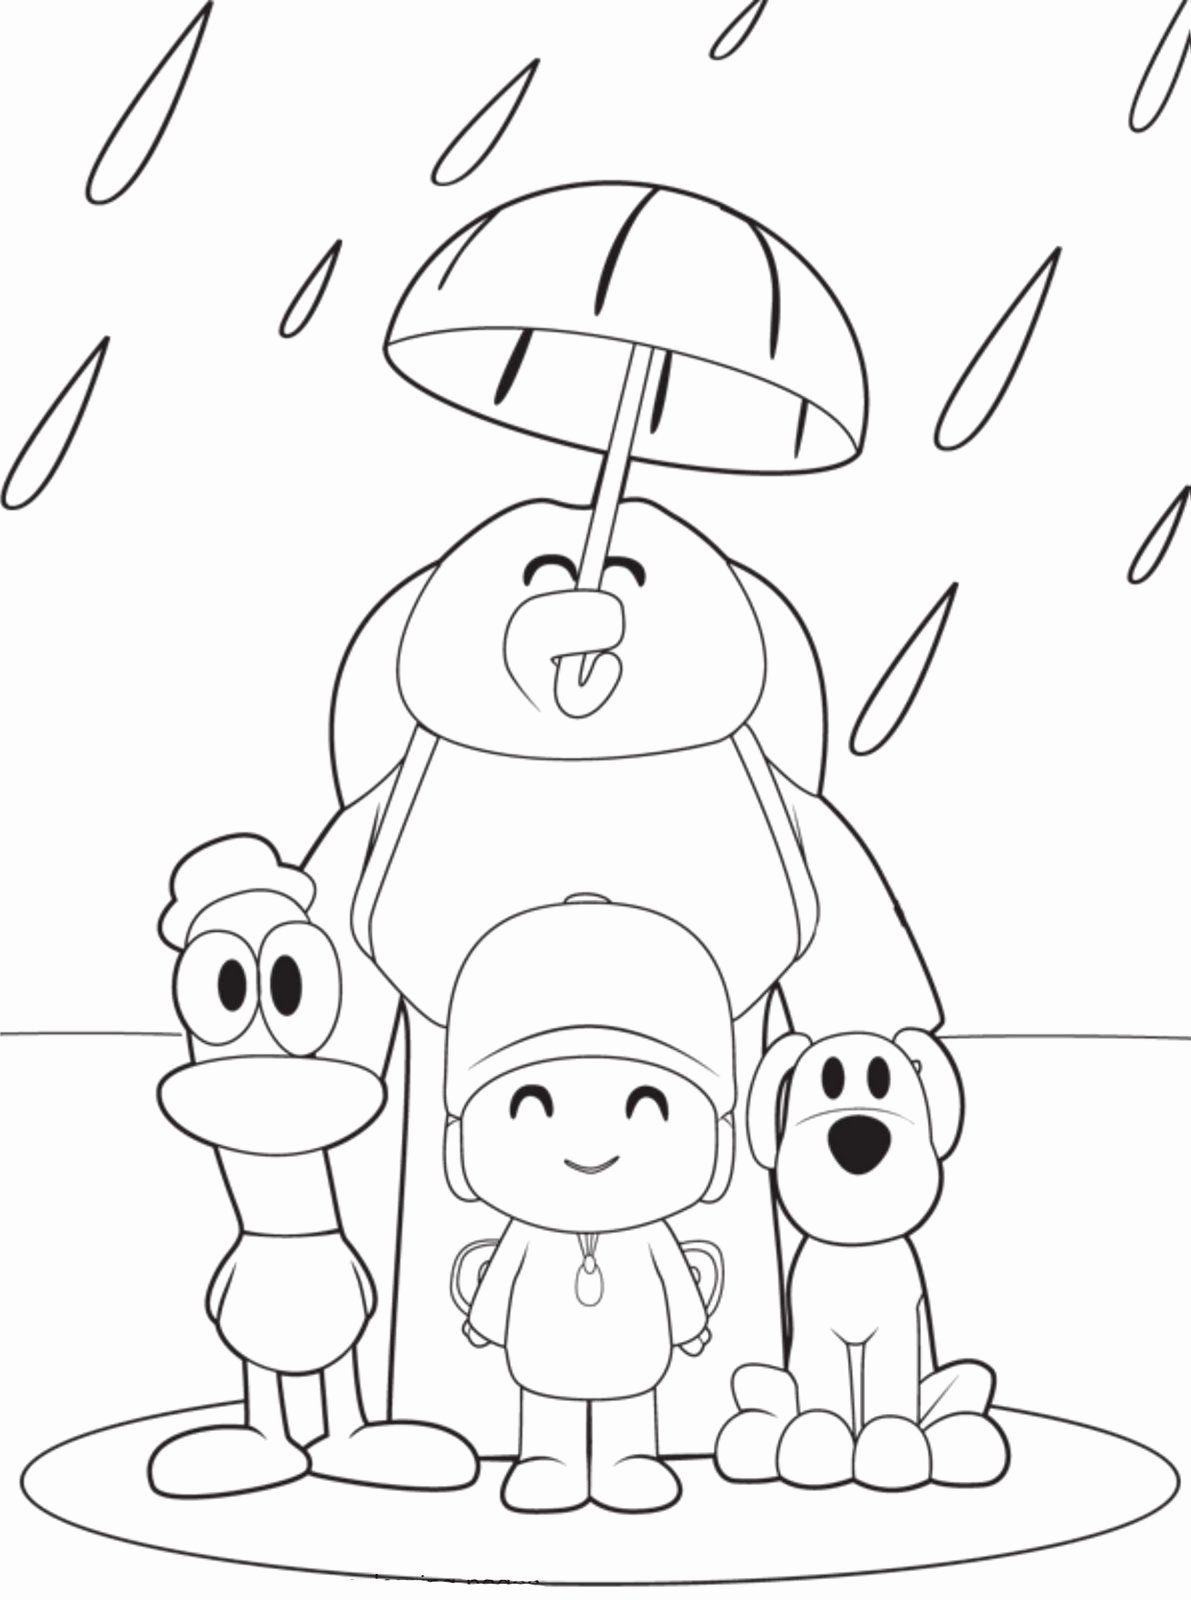 Toddler Coloring Pages Printable Elegant Free Printable Pocoyo Coloring Pages For Kids Cartoon Coloring Pages Umbrella Coloring Page Barbie Coloring Pages